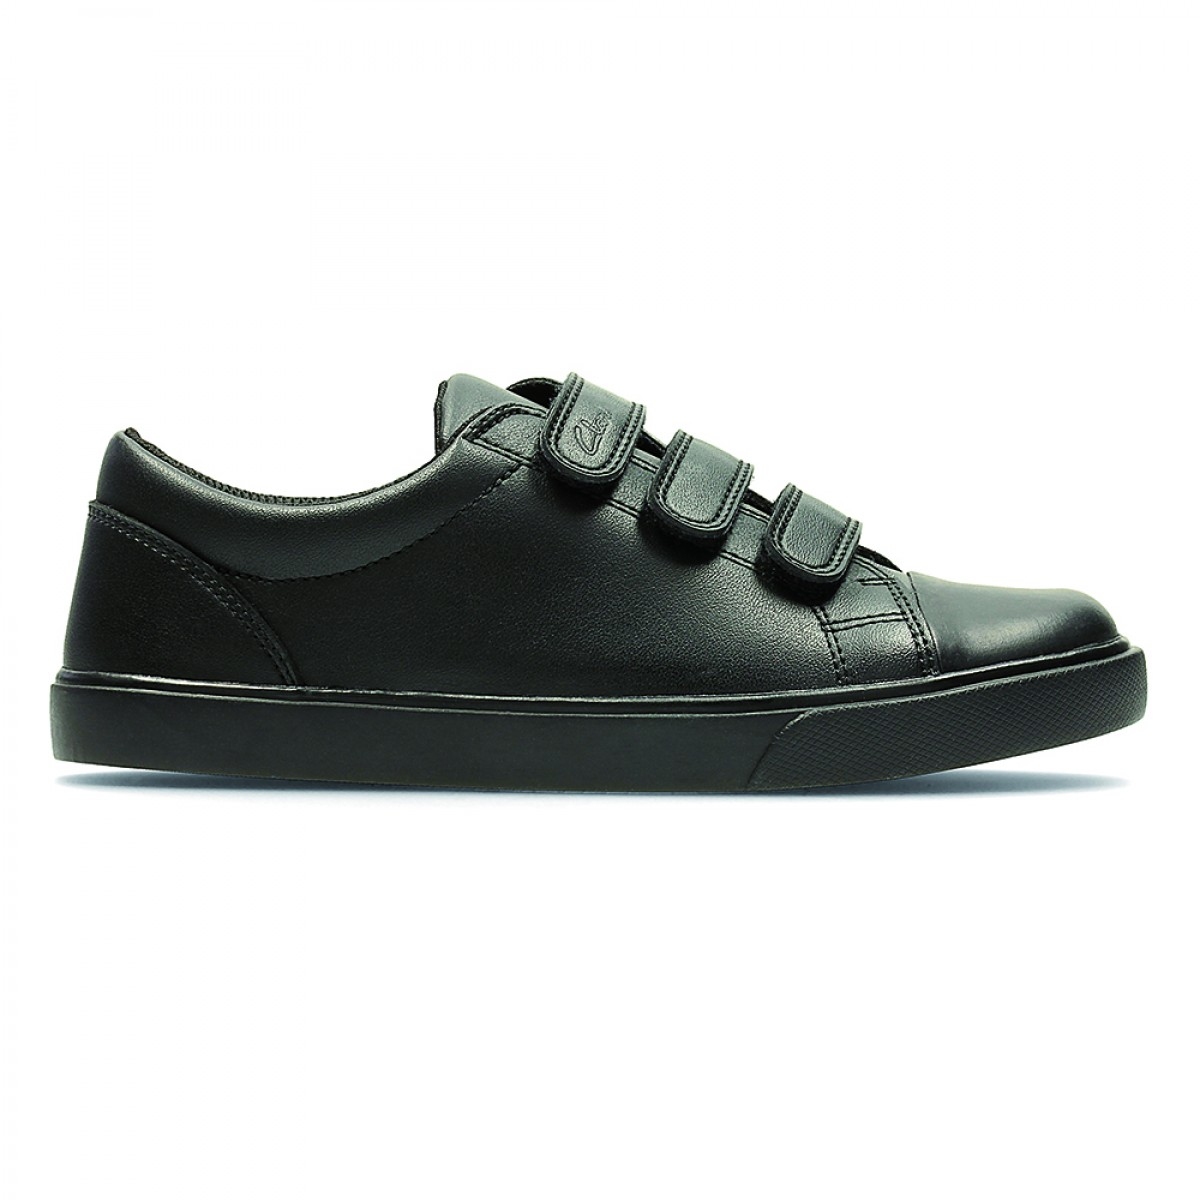 Clarks Loxton Time Inf Black Leather Shoes